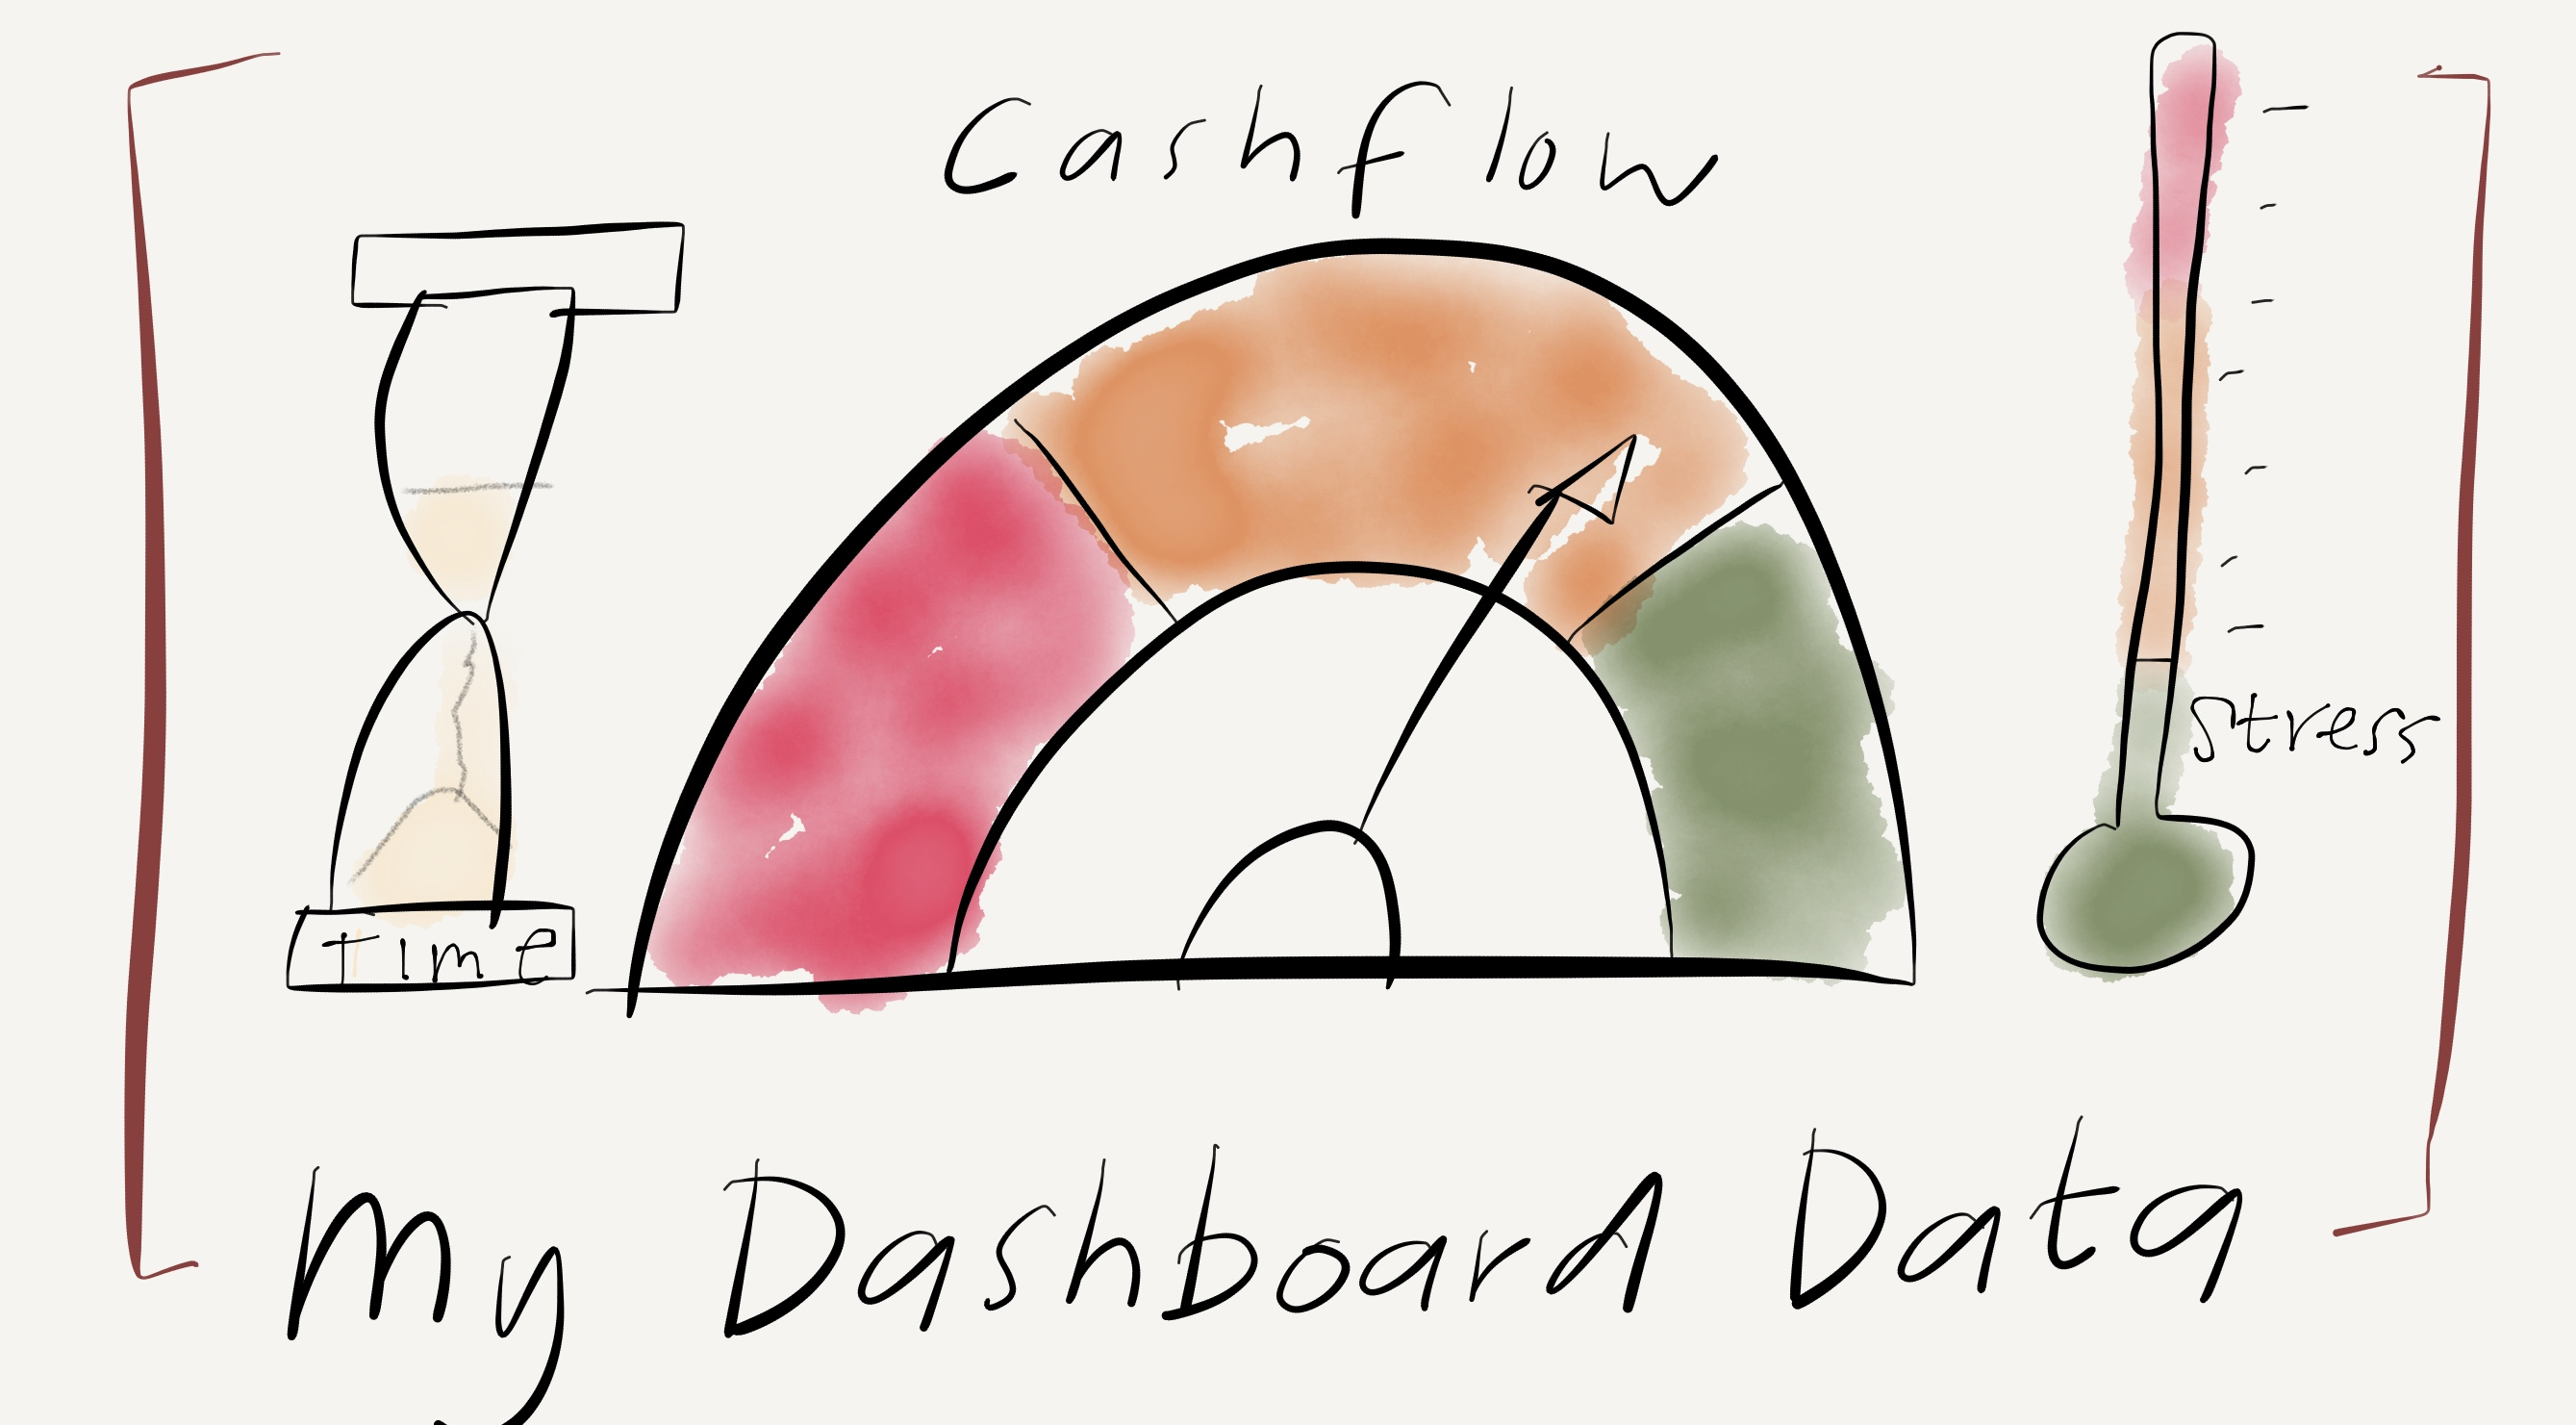 Dashboard Data - one of the thought experiments!